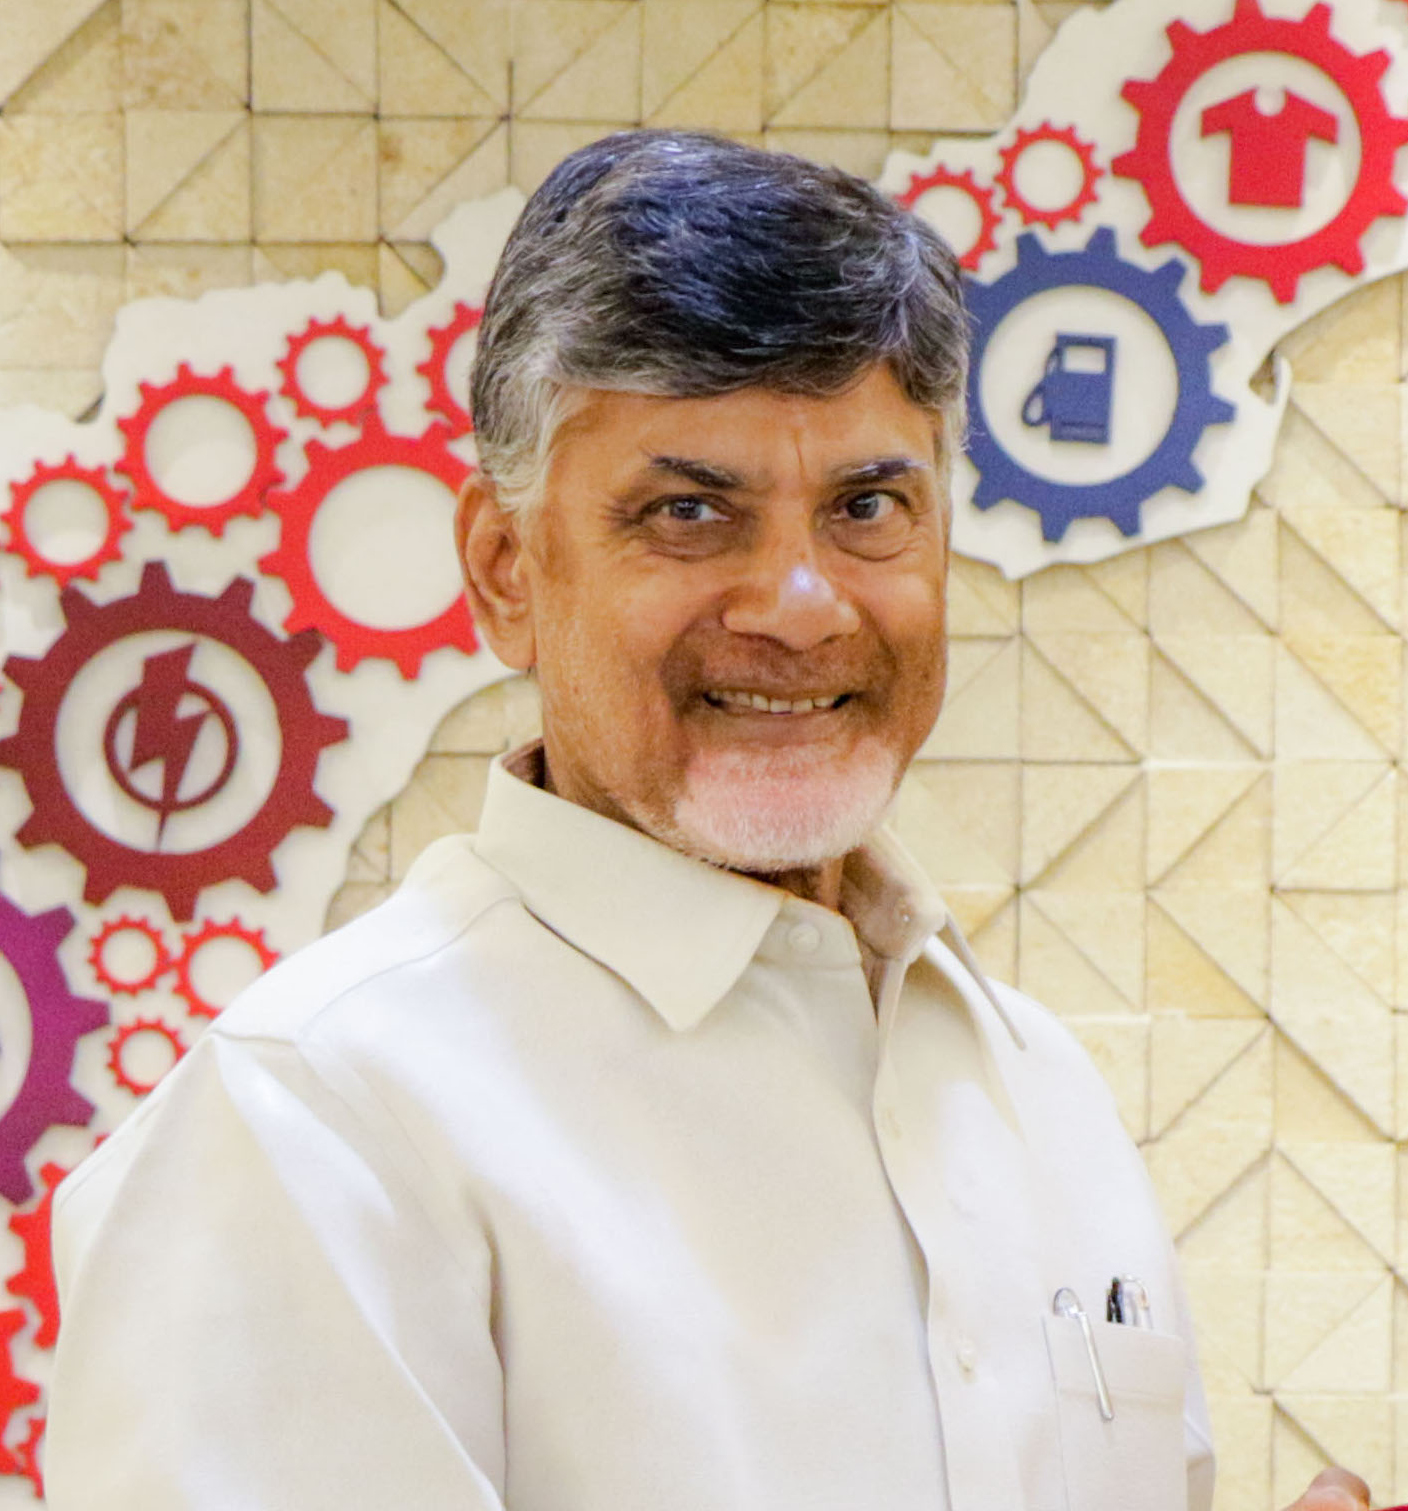 TDP supremo N. Chandrababu Naidu had escaped assassination attempt by Maoists in Tirupati in 2003 when he was the chief minister of undivided Andhra Pradesh.